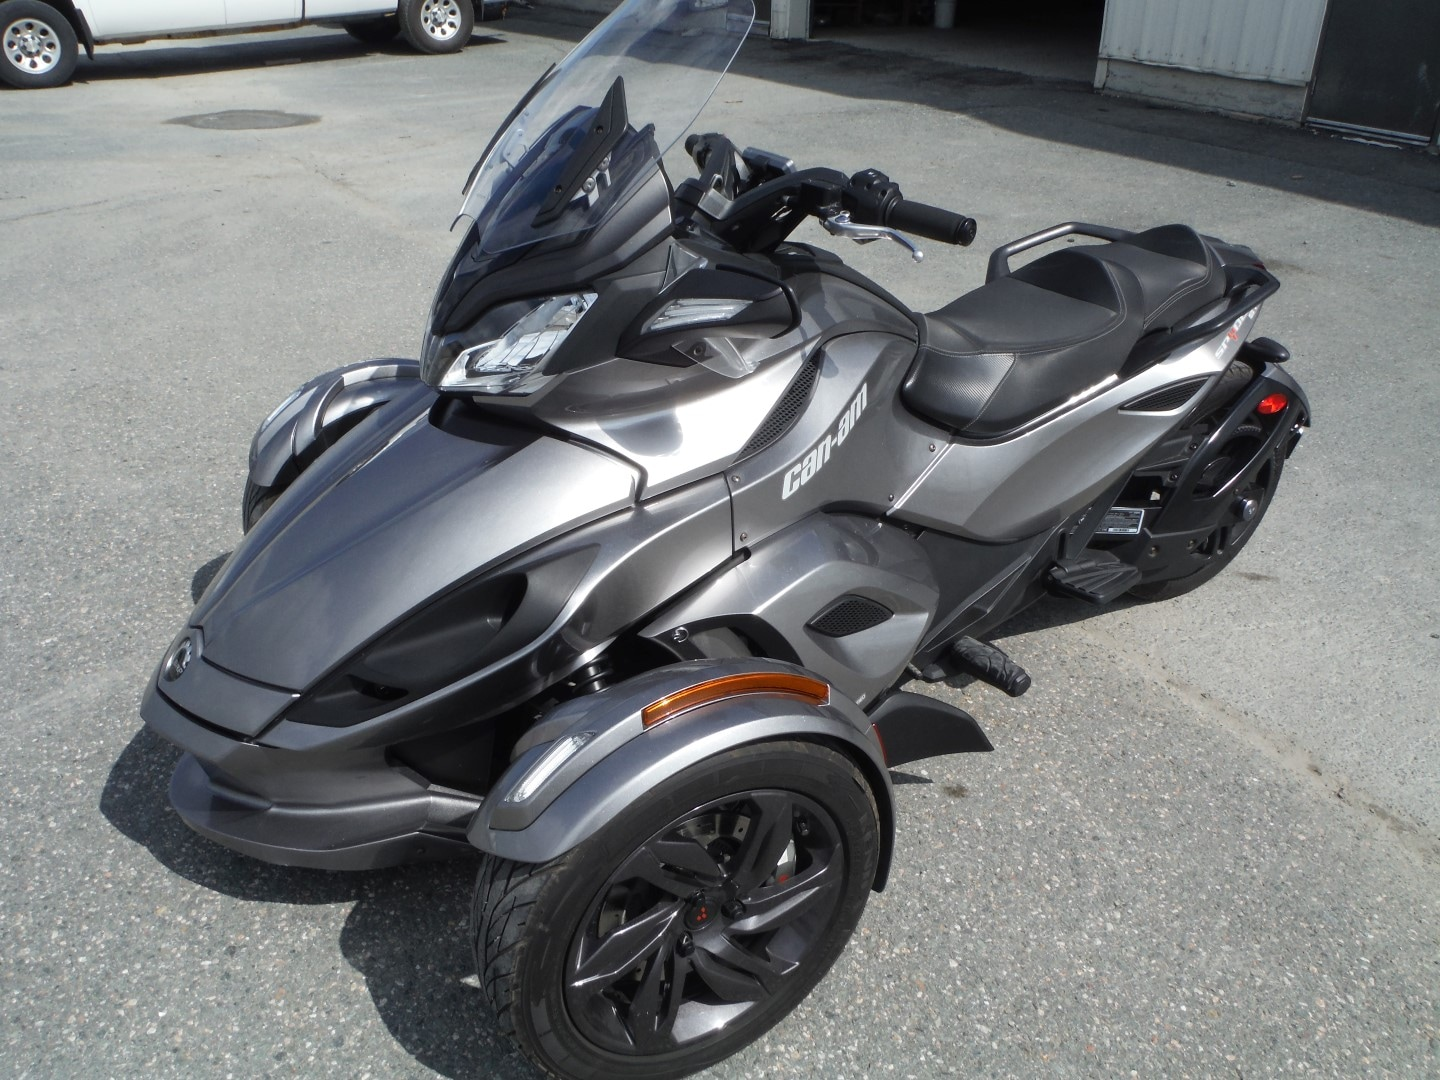 achat moto can am spyder occasion. Black Bedroom Furniture Sets. Home Design Ideas